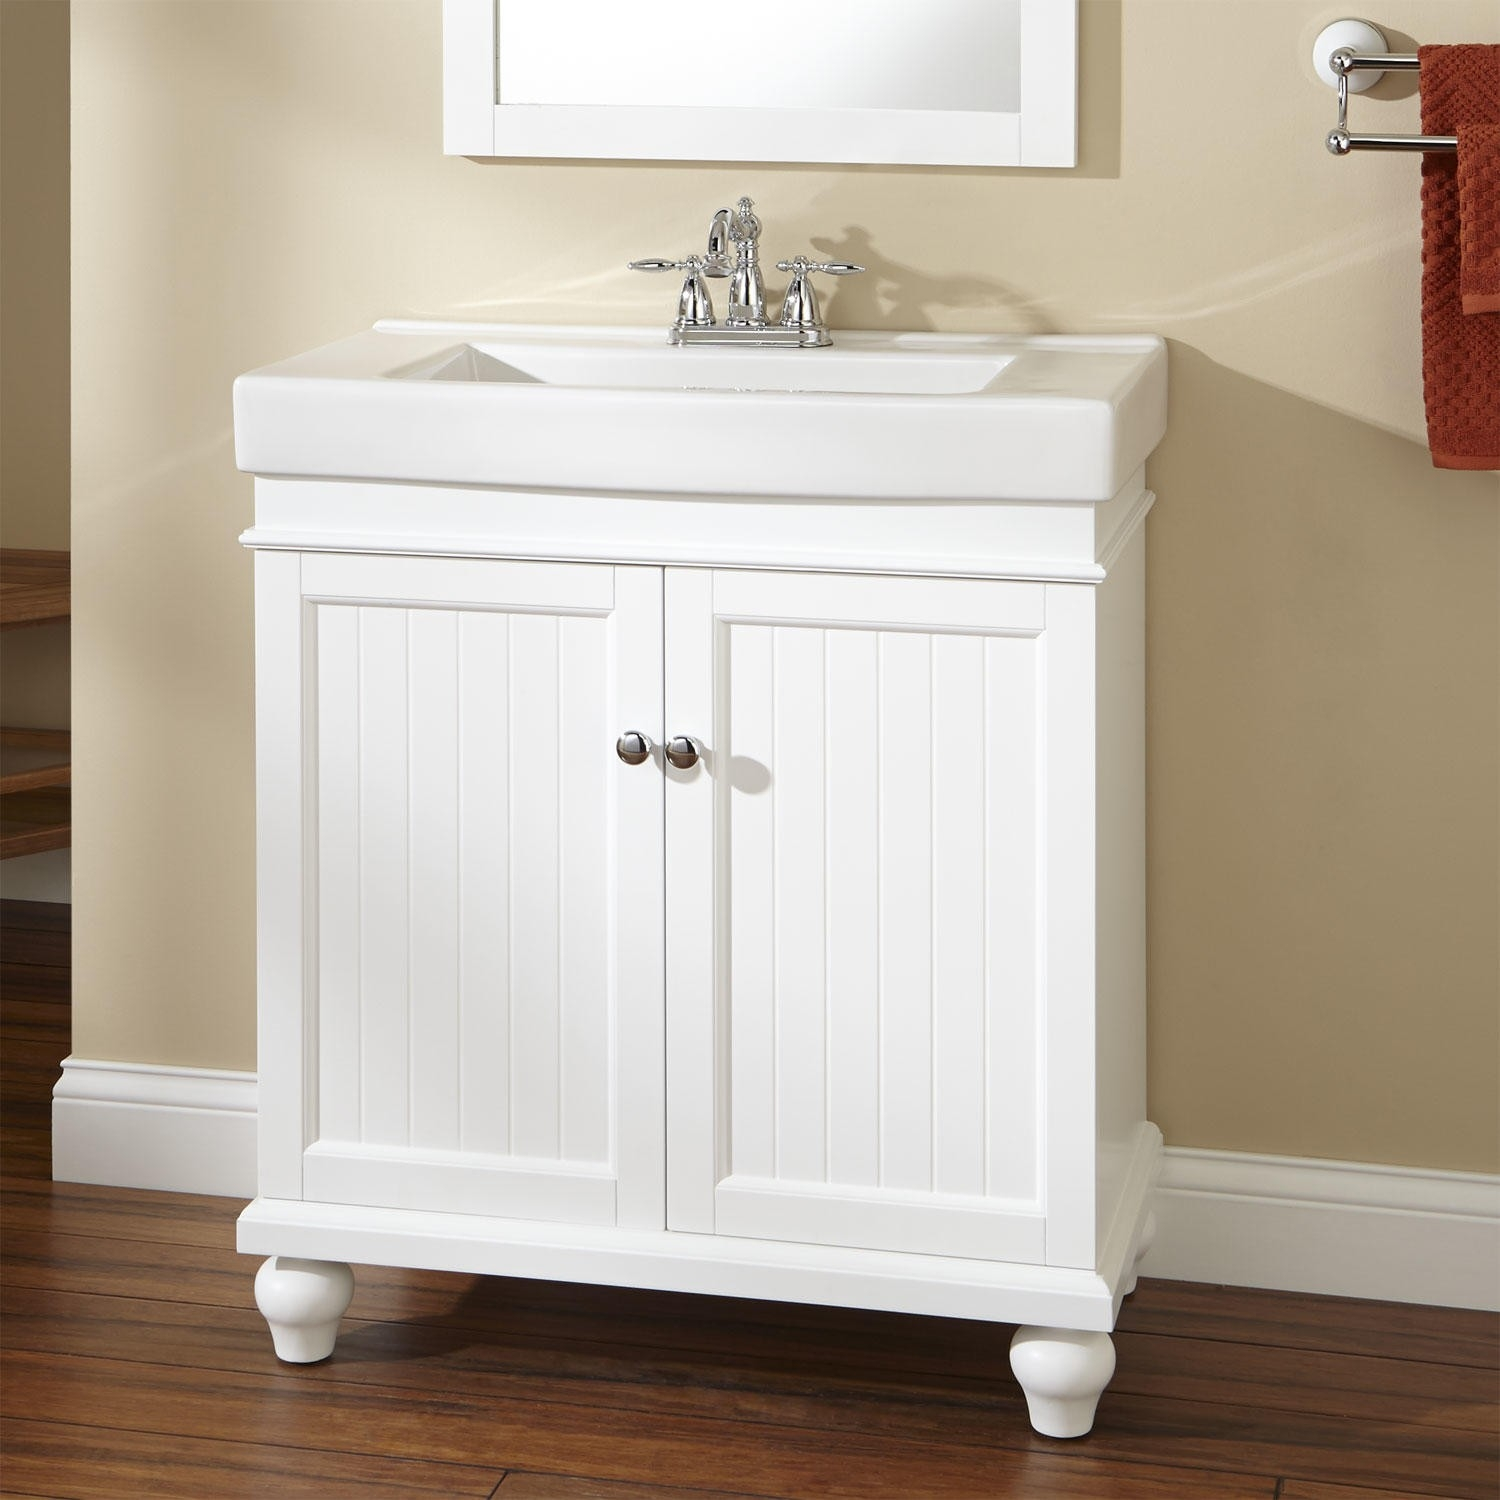 White Bathroom Vanity Without Sink